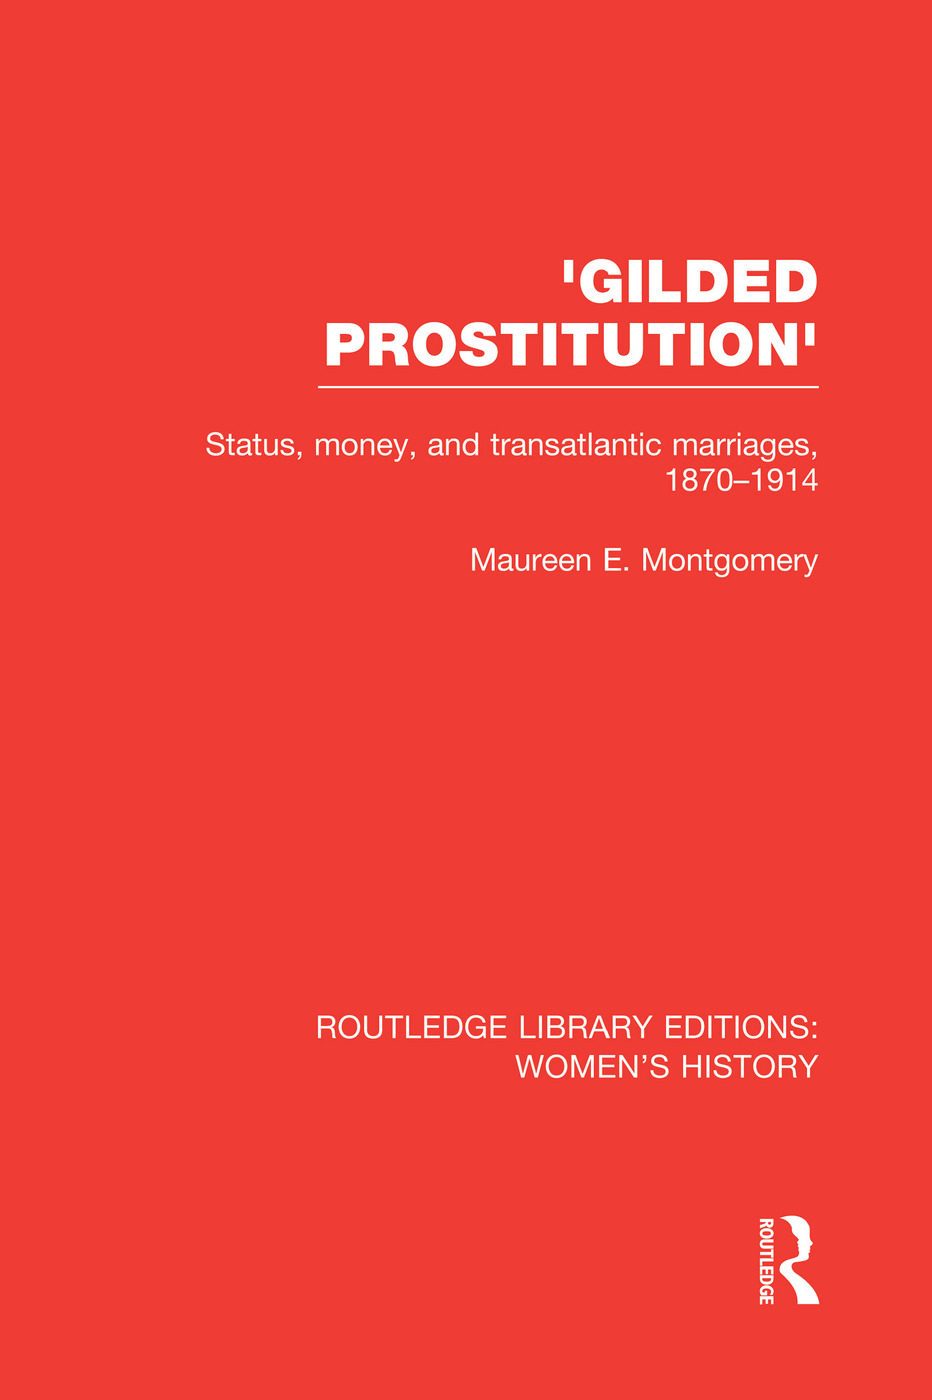 'Gilded Prostitution': Status, Money and Transatlantic Marriages, 1870-1914 book cover